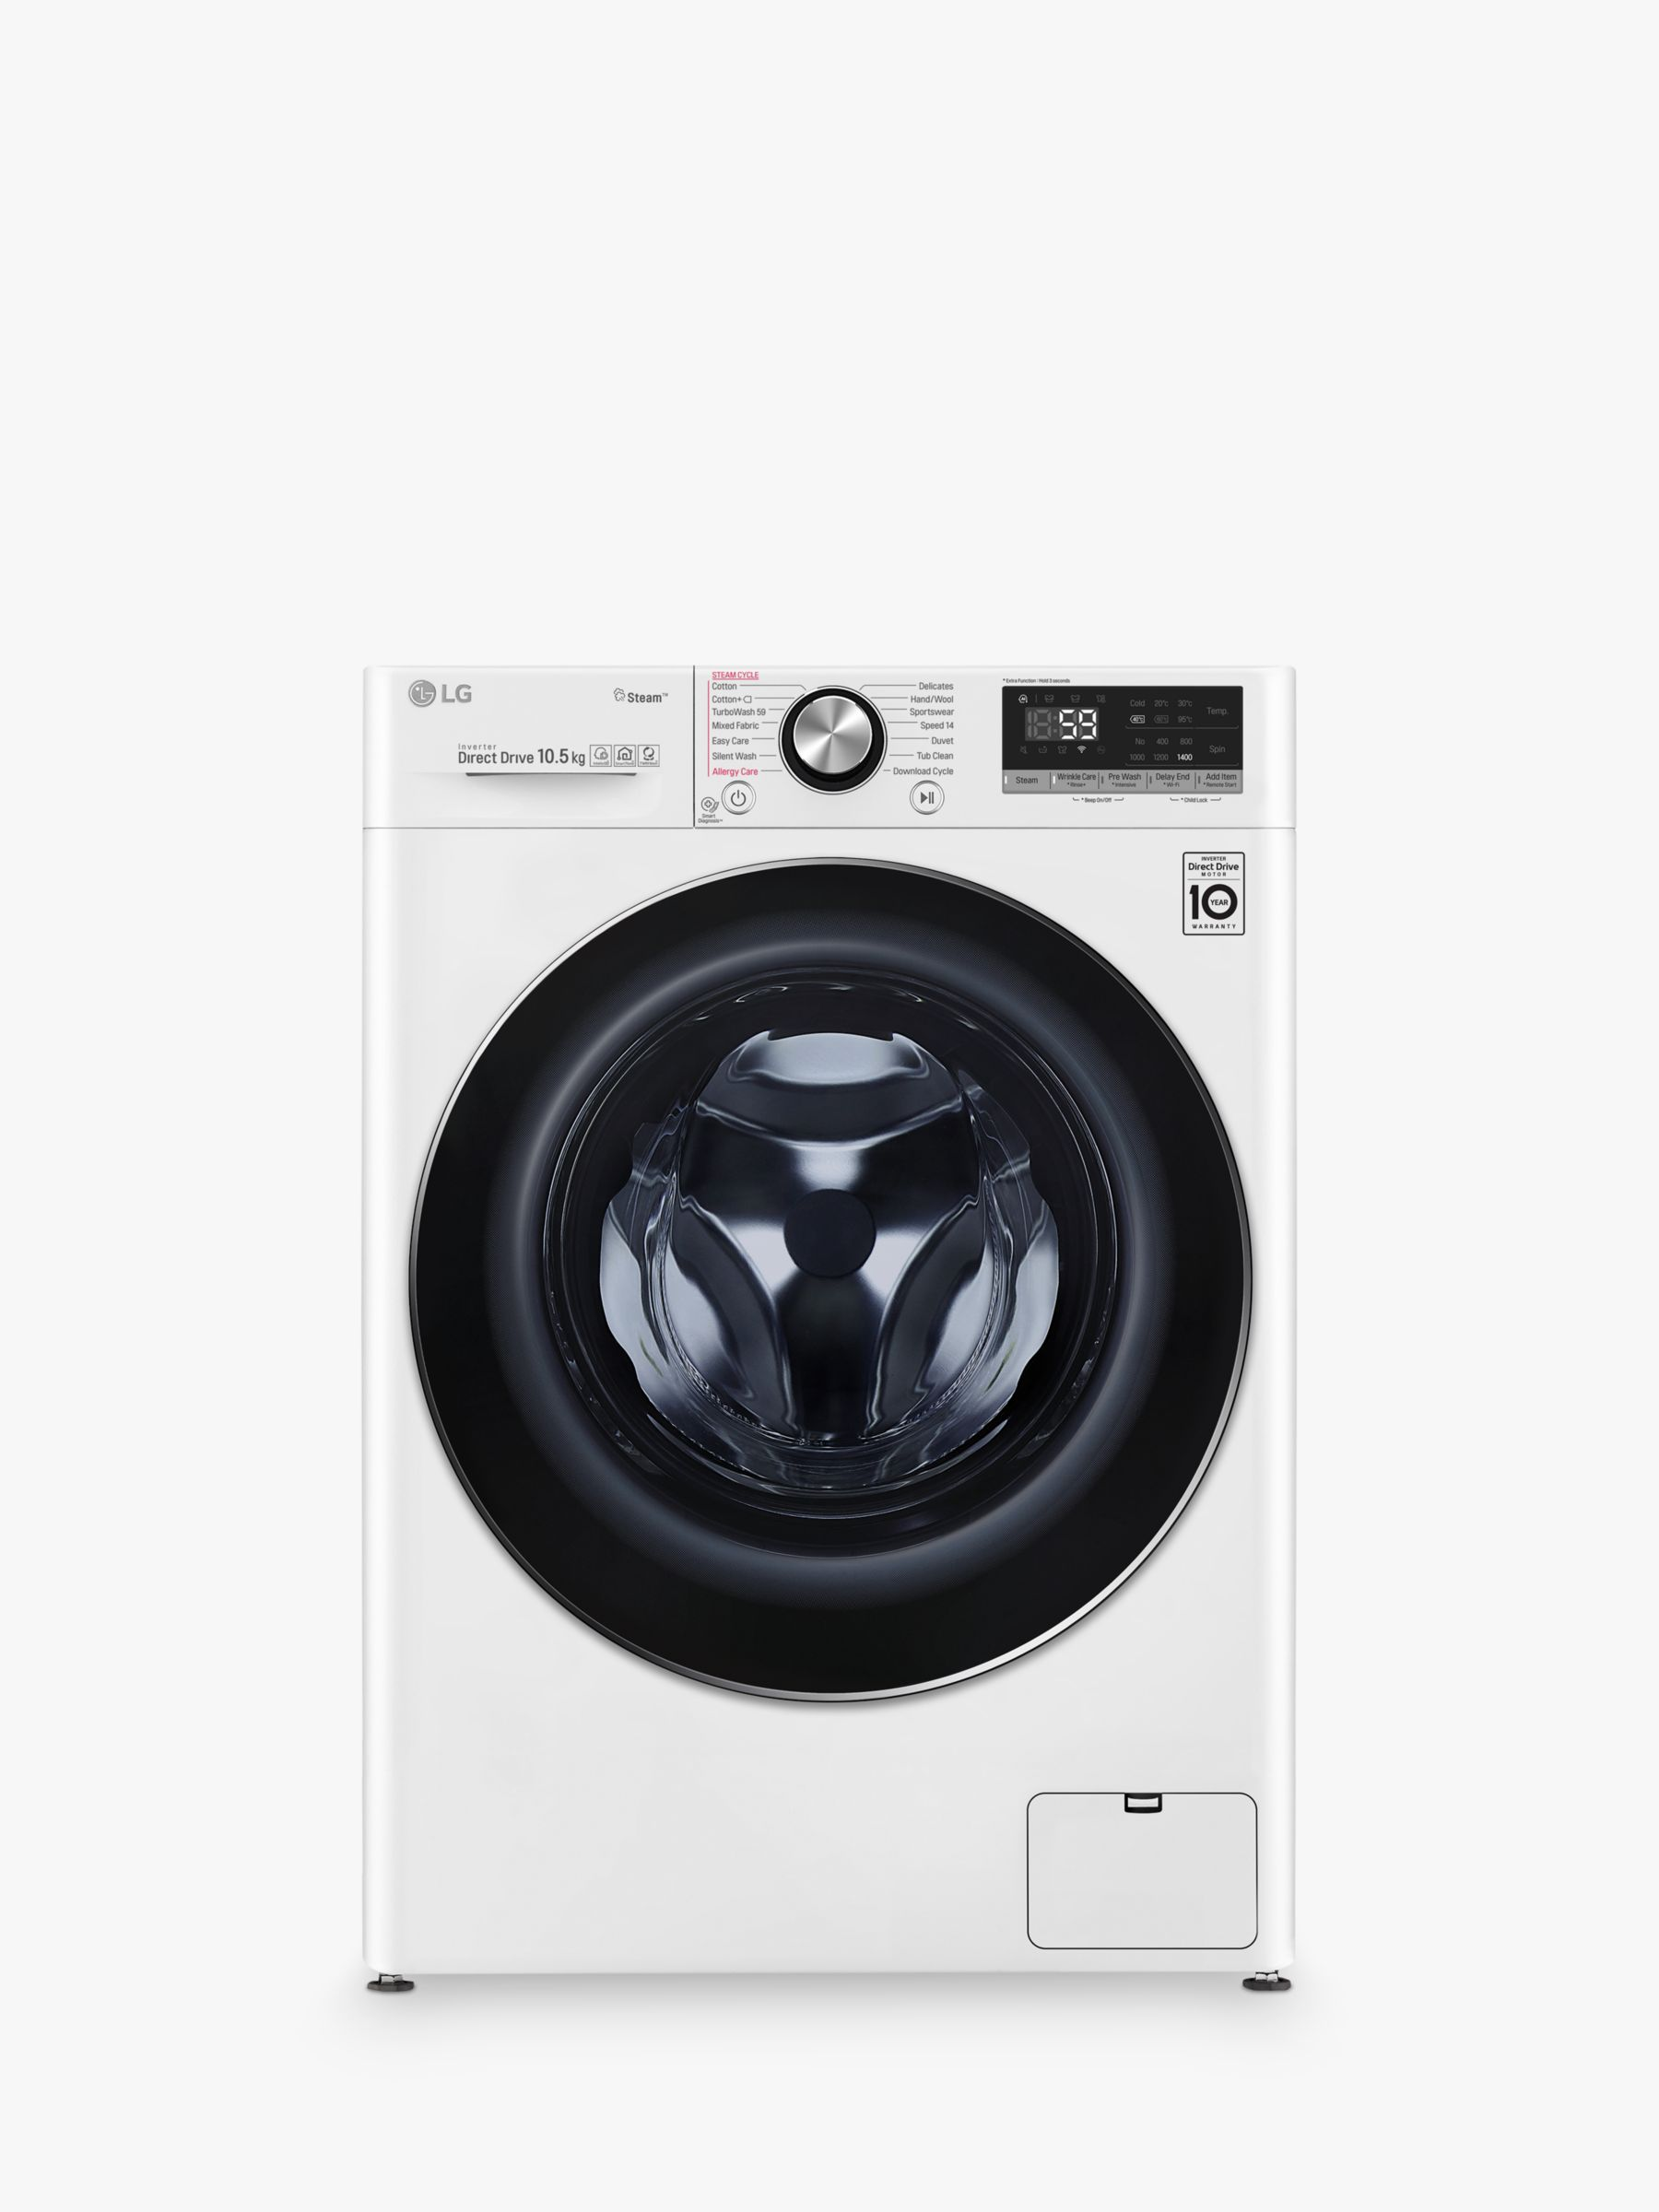 LG LG F4V710WTS Freestanding Washing Machine, 10kg Load, A+++ Energy Rating, 1400rpm Spin, White